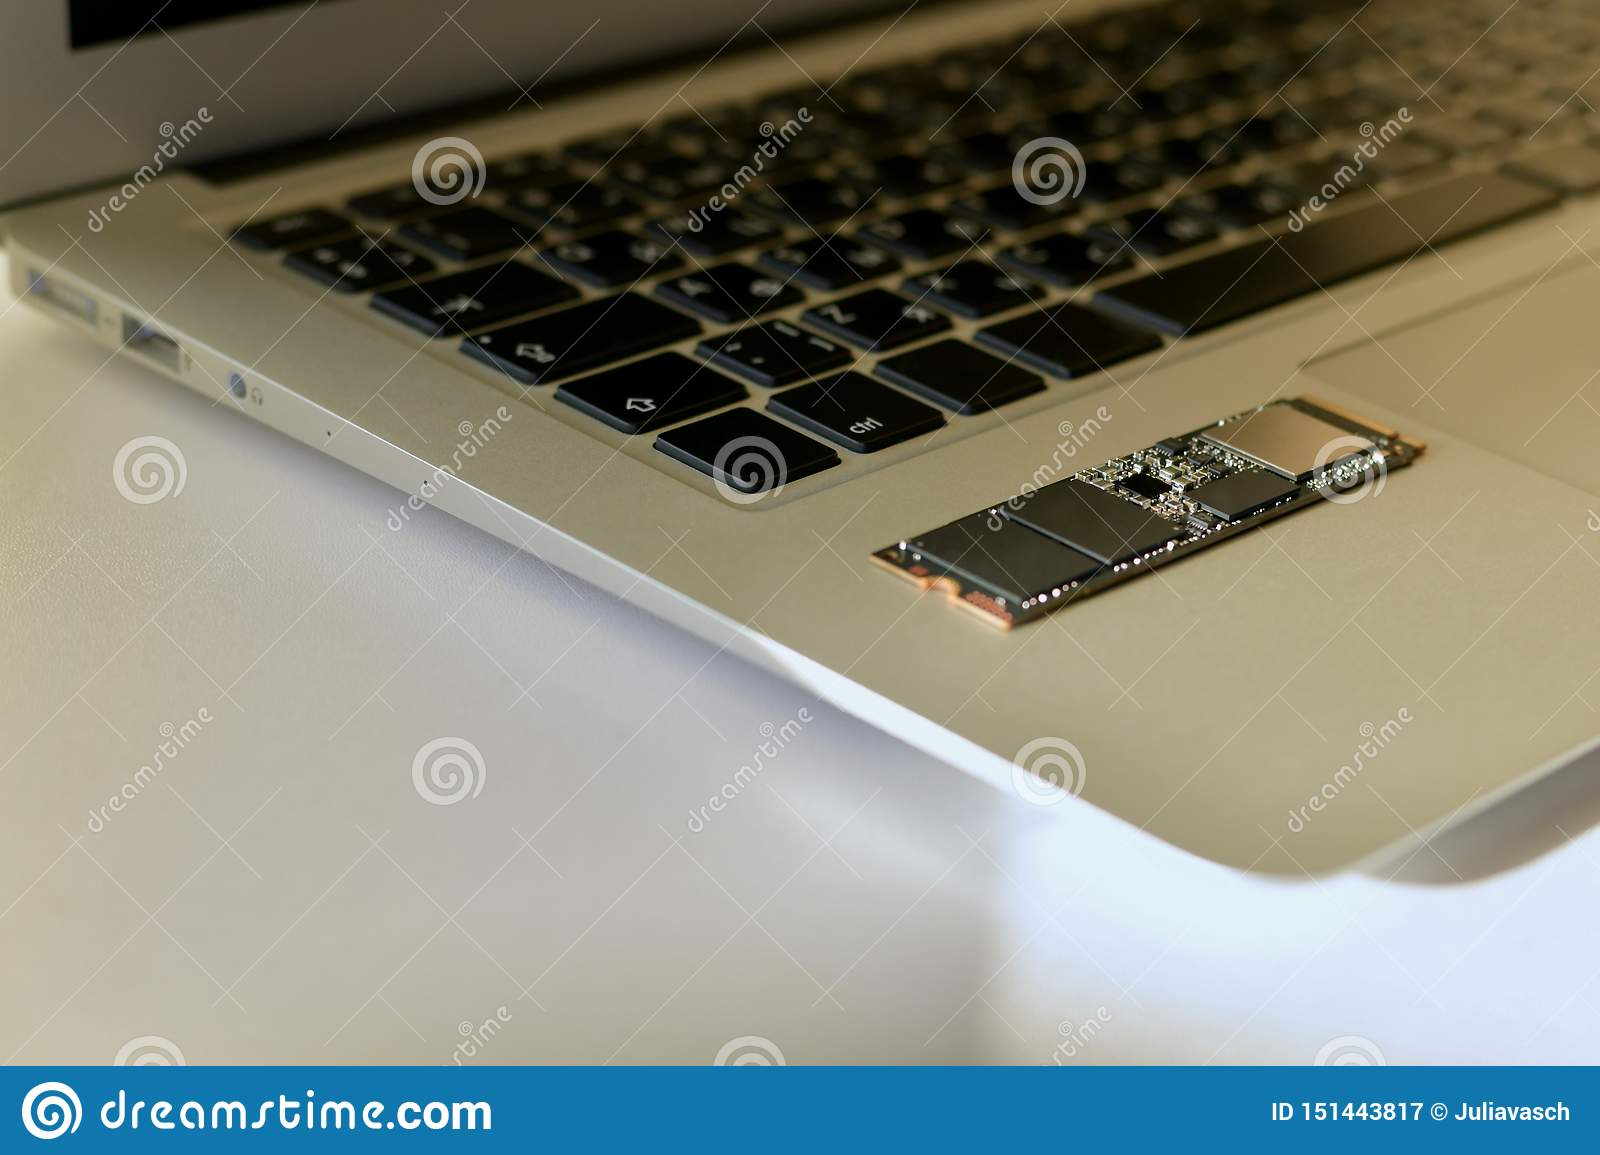 Chip SSD-drive on the keyboard.